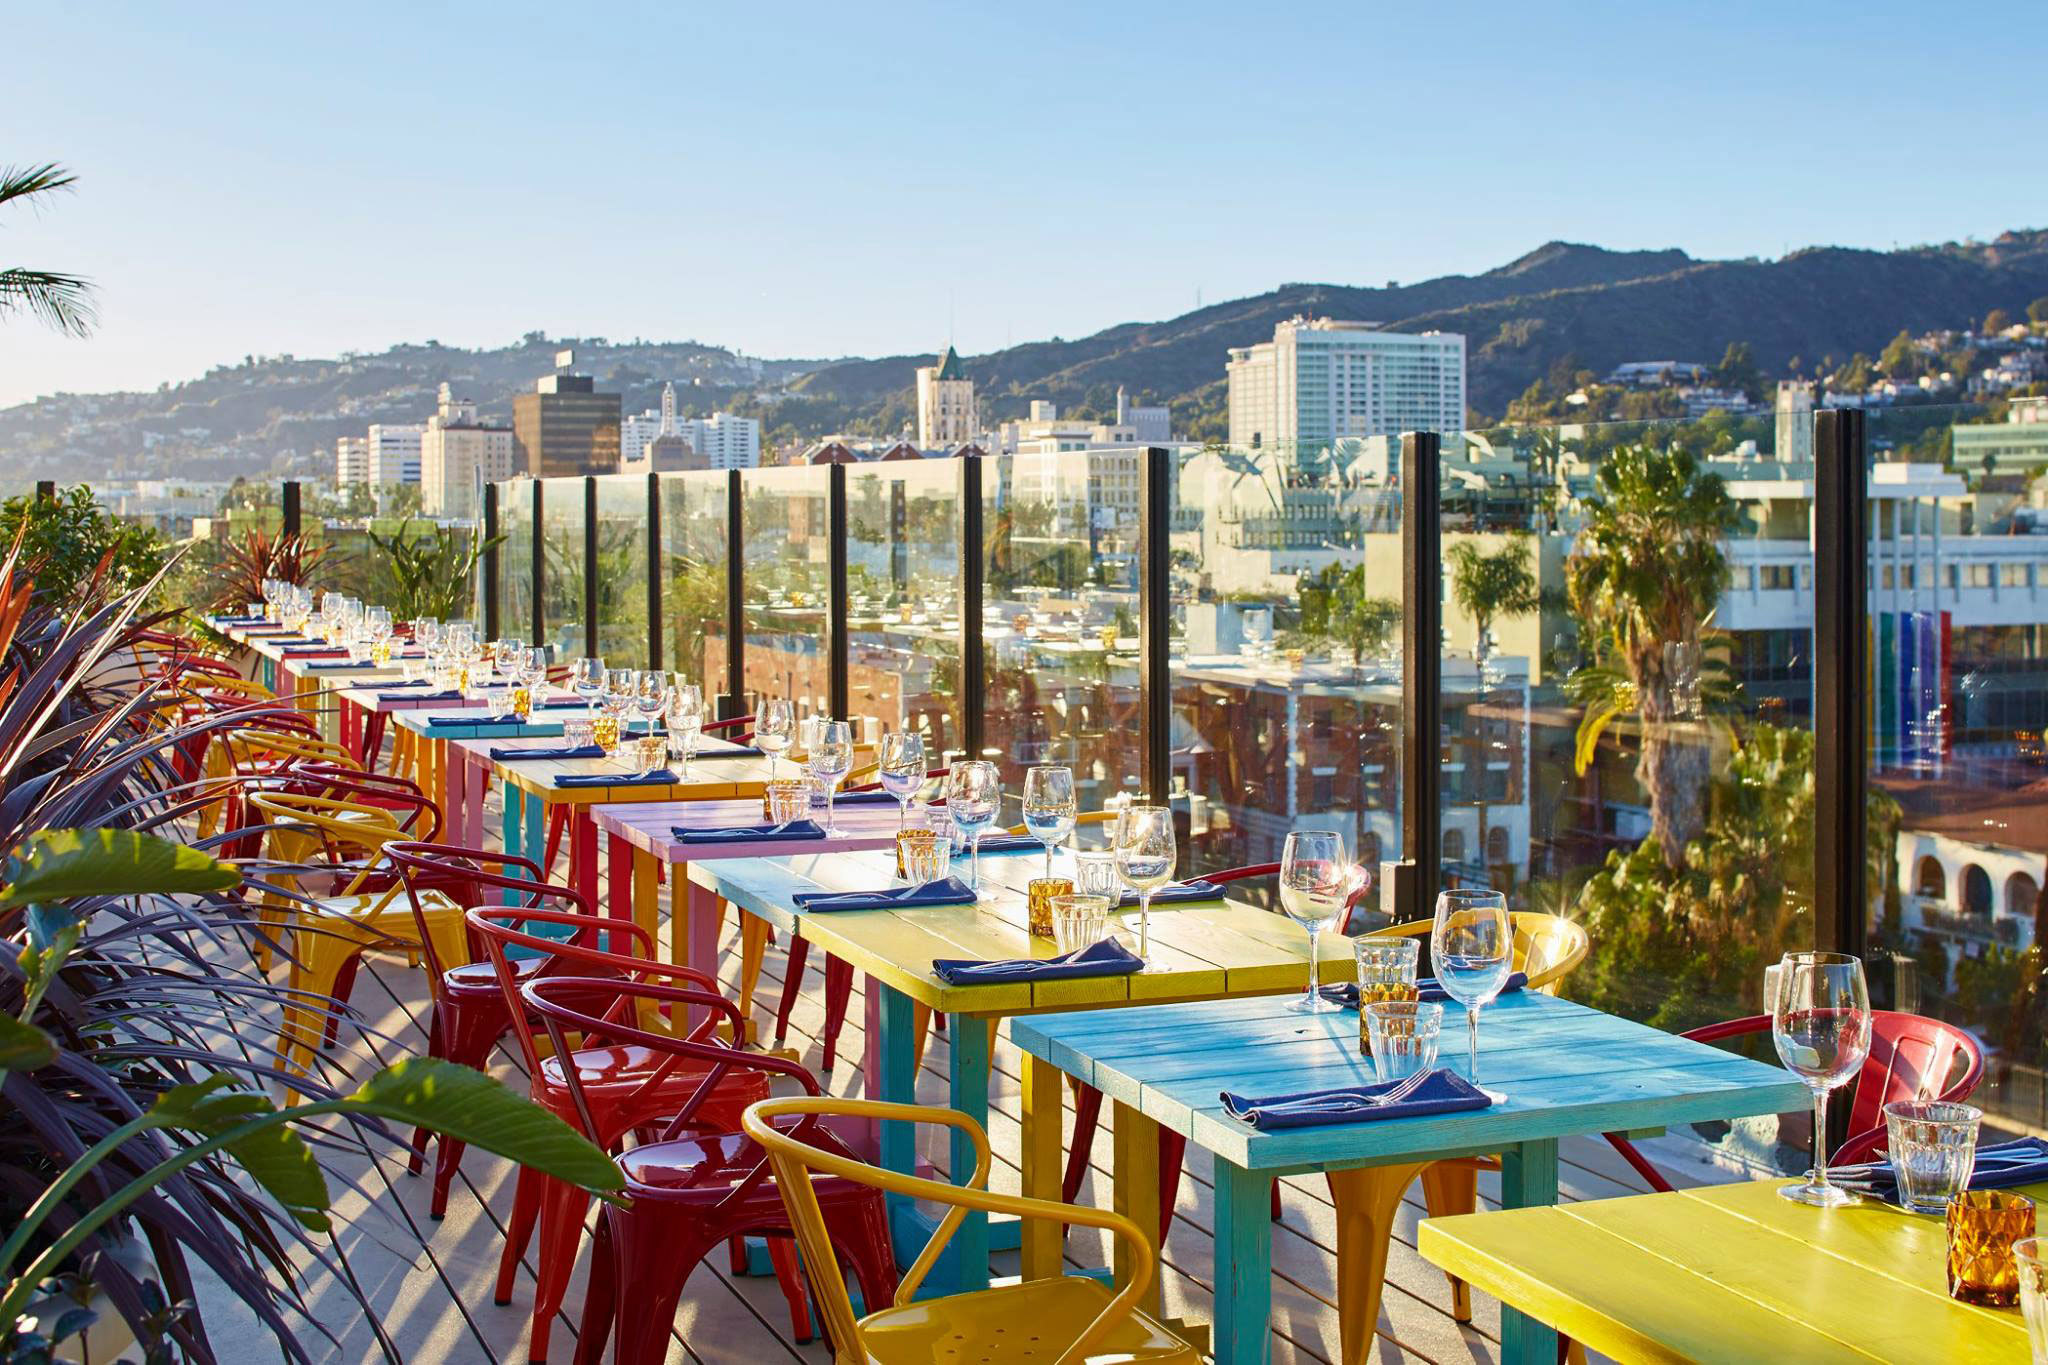 The best rooftop bars in the city